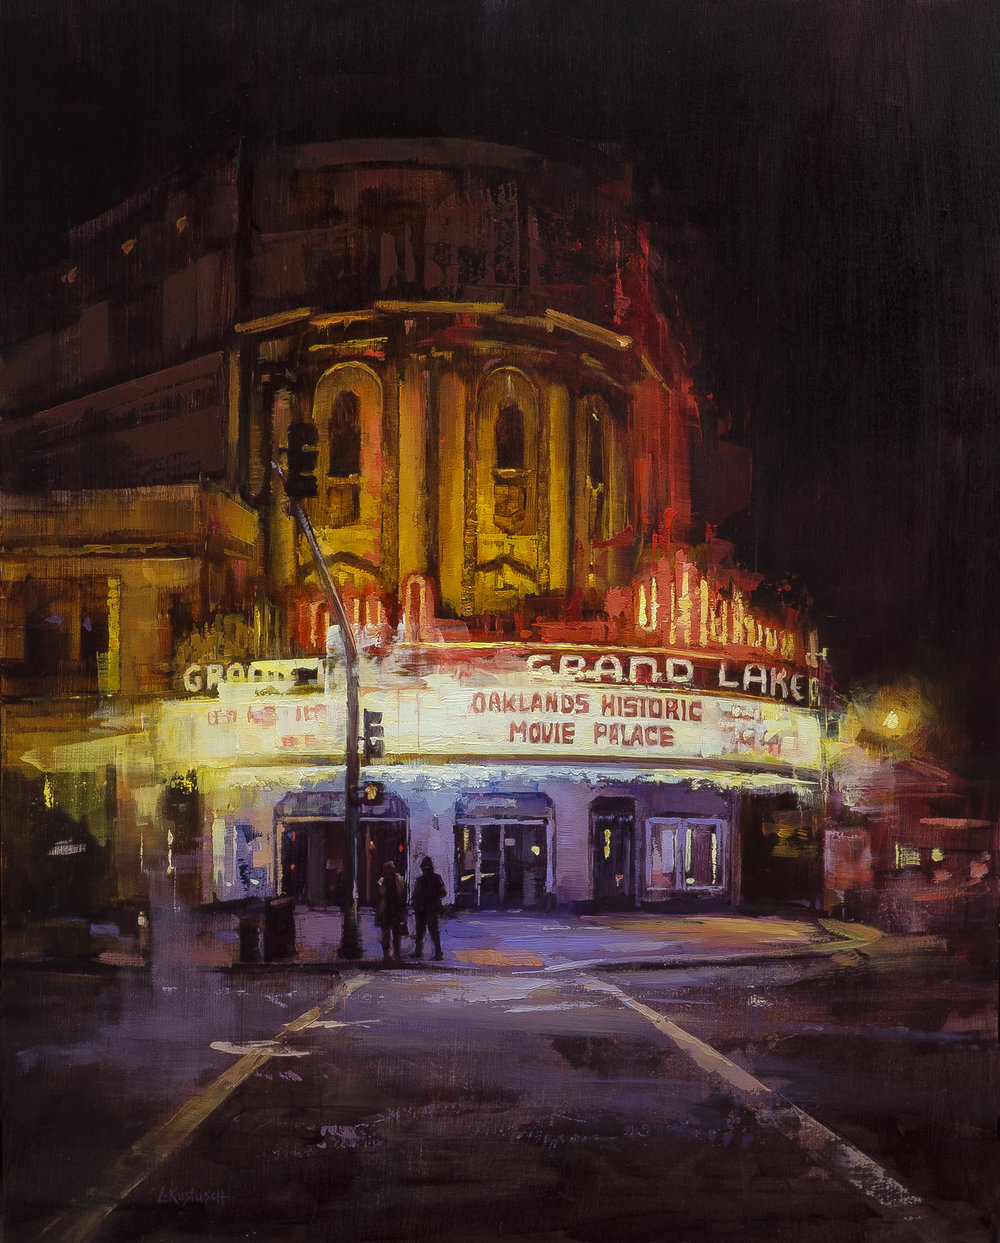 Oakland's Historic Movie Palace